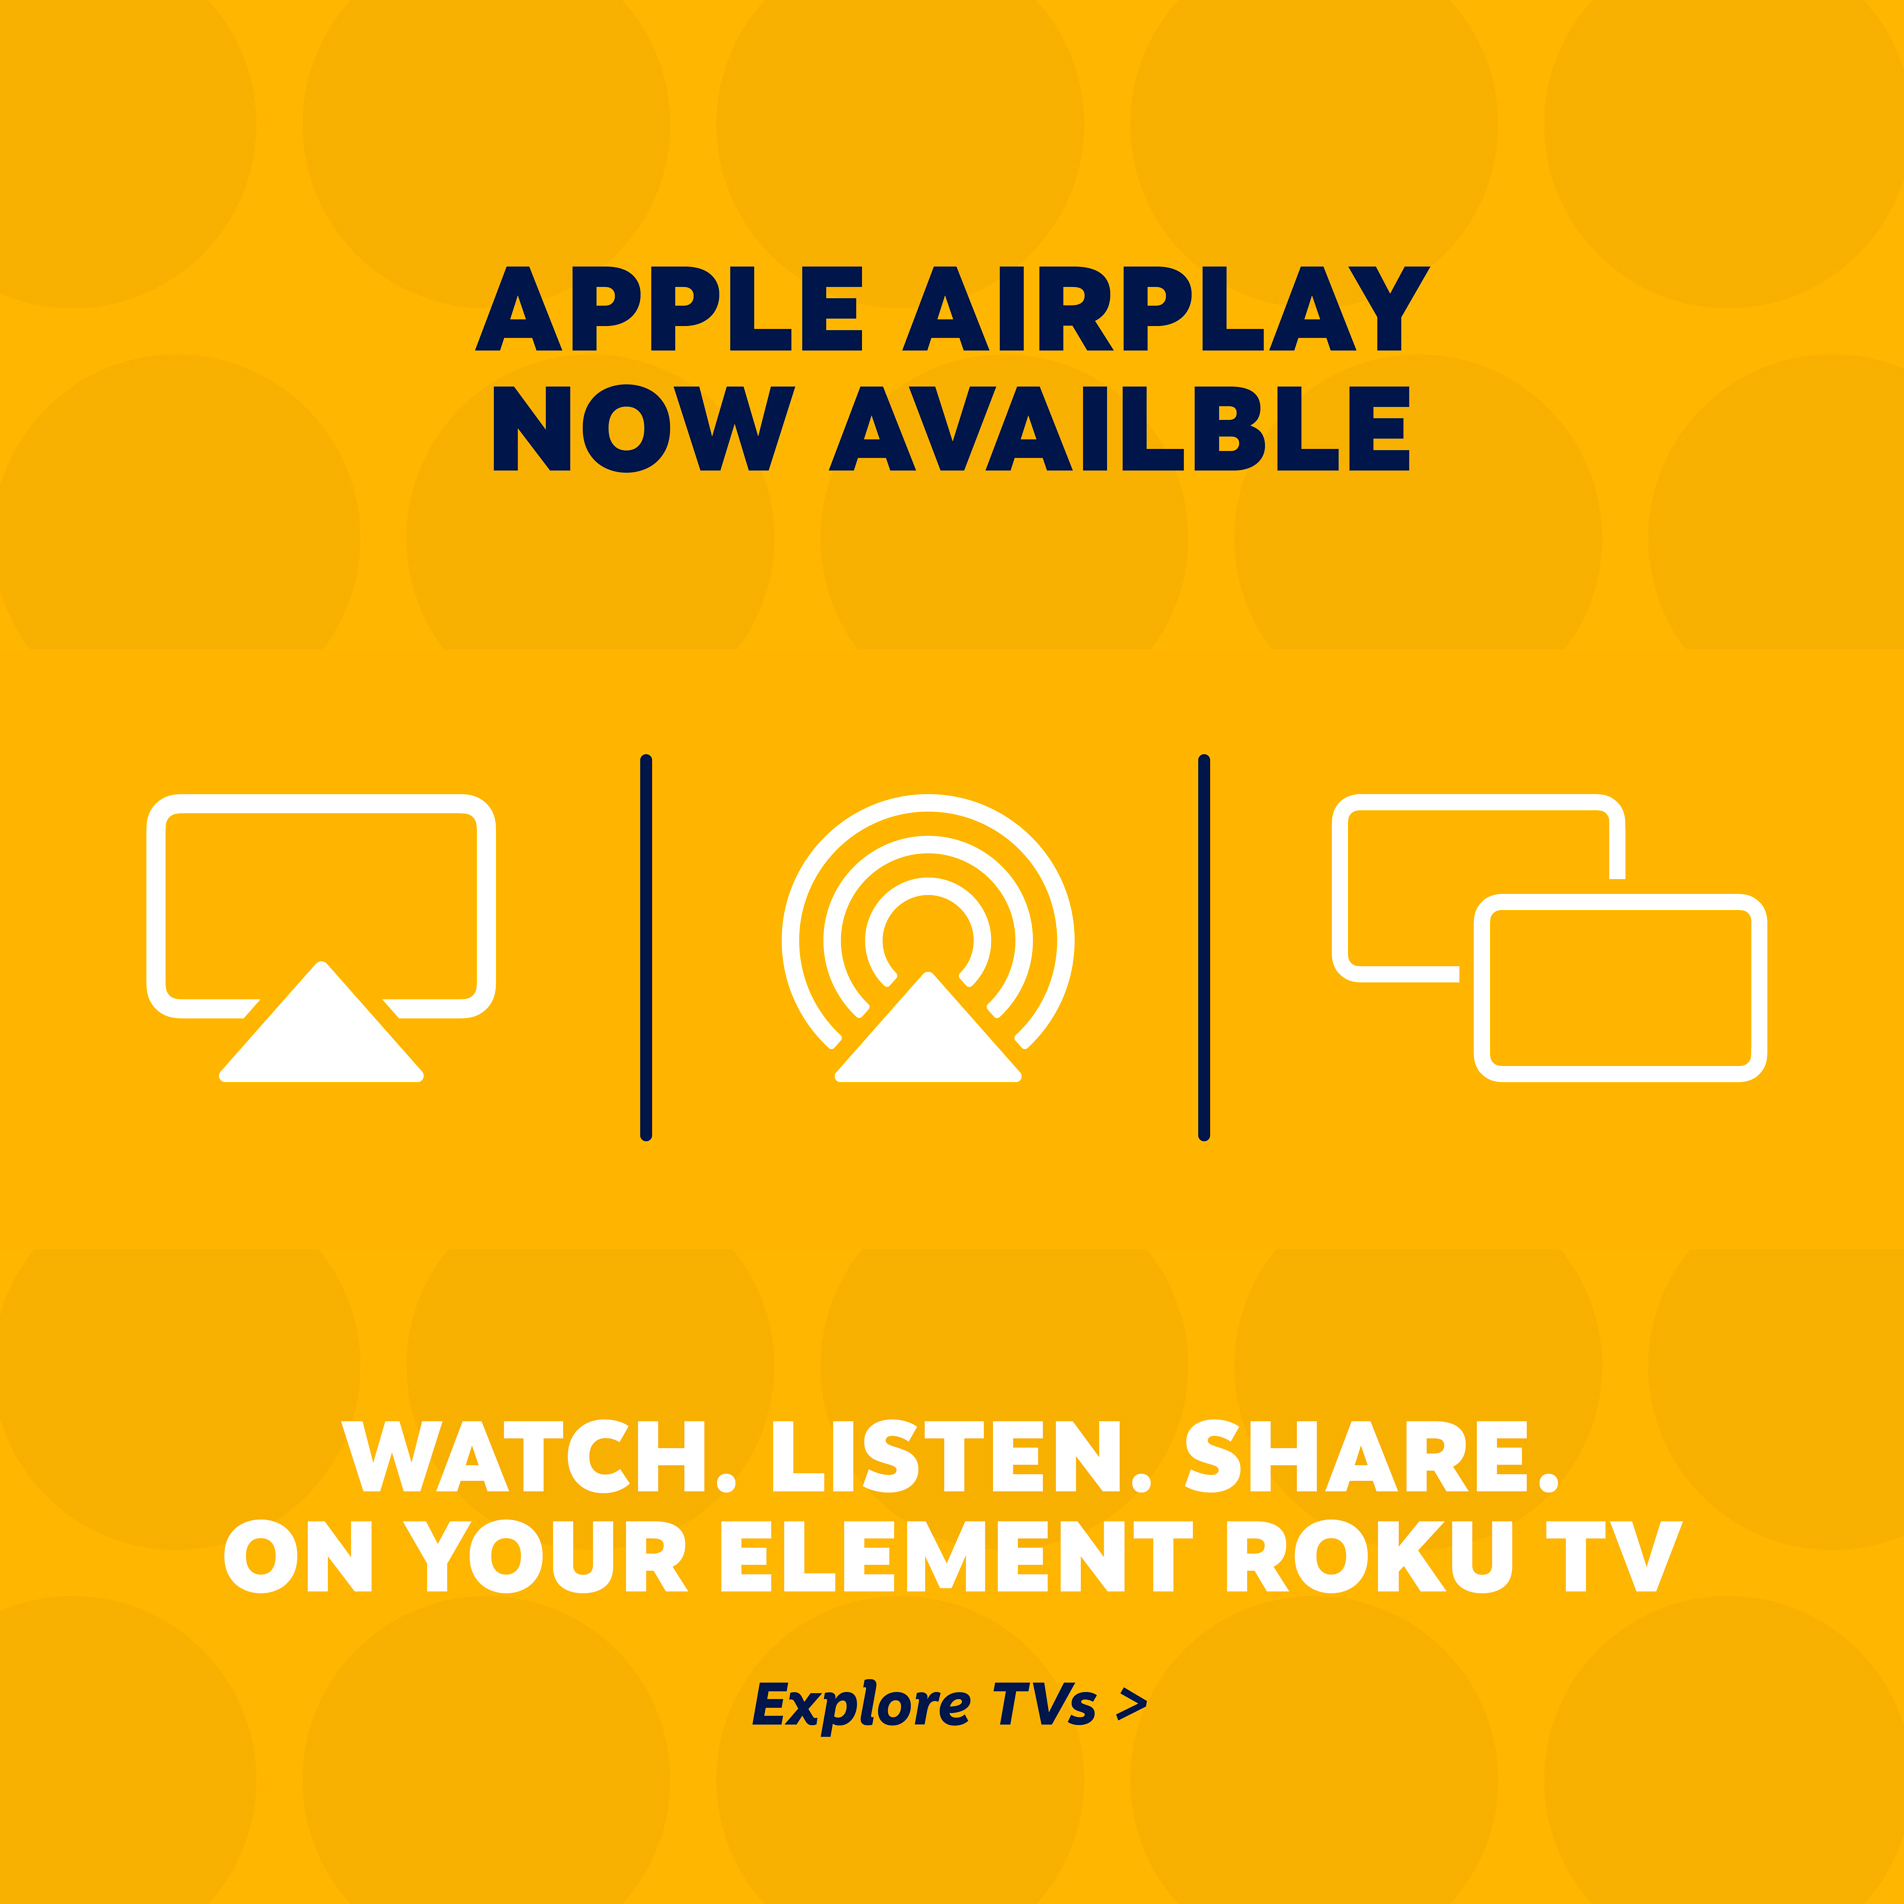 Apple Air Play now available. Watch, listen, share on your Element Roku TV.